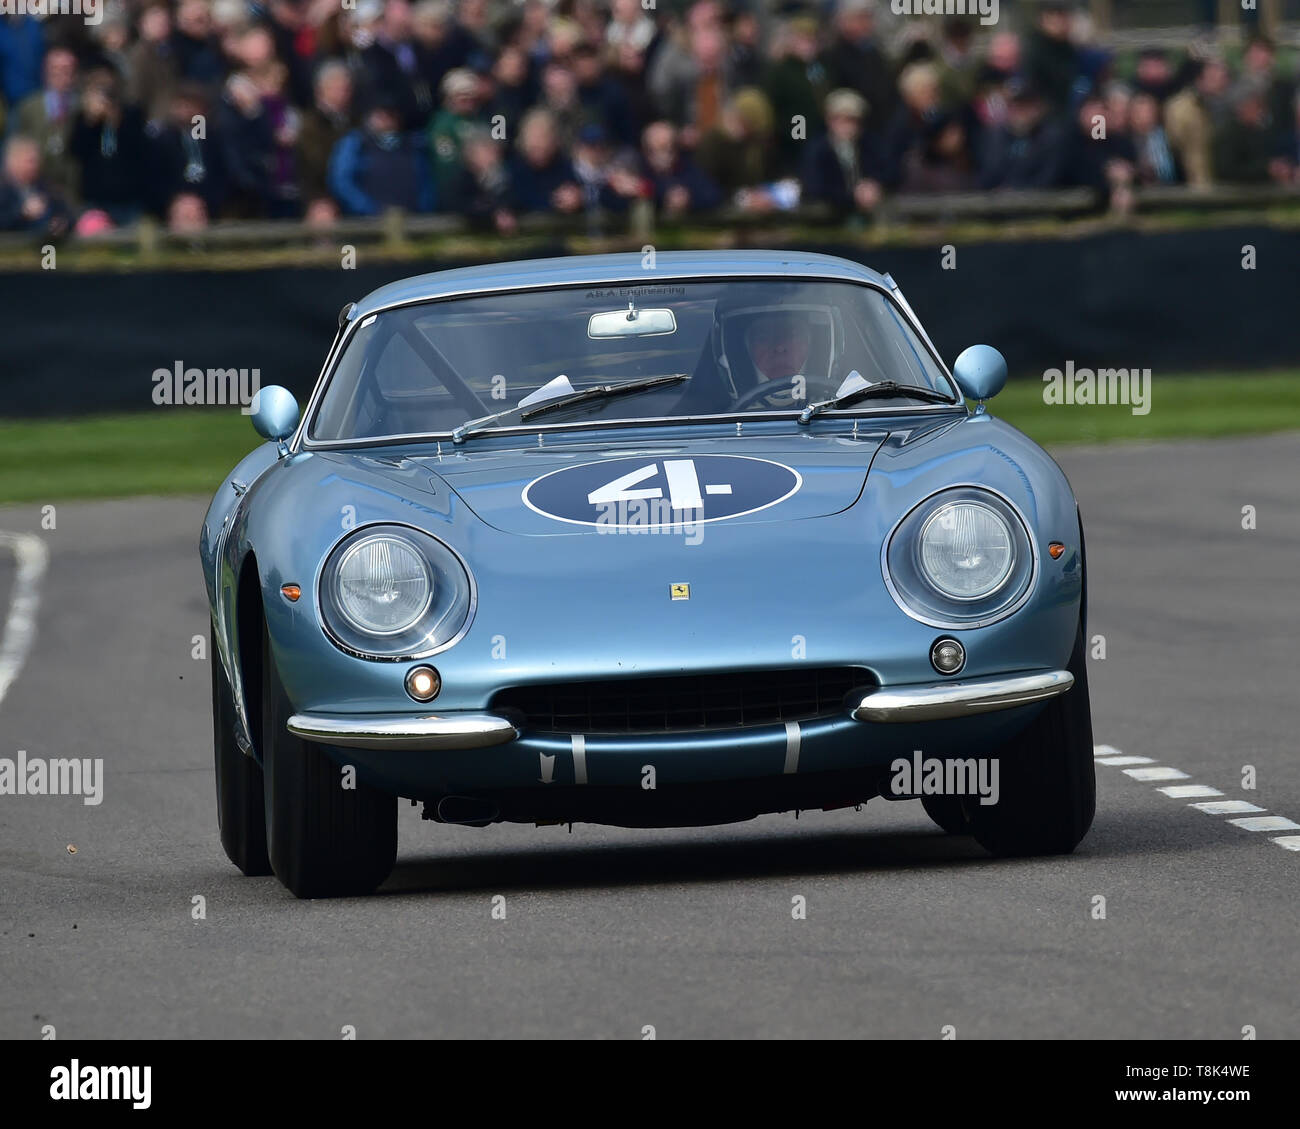 Joe Twyman, Vincent Gaye, Ferrari 275 GTB/C, Graham Hill Trophy, Closed cockpit GT cars, Prototype cars, Spirit of the RAC TT Races 1960-1964, 77th Me - Stock Image